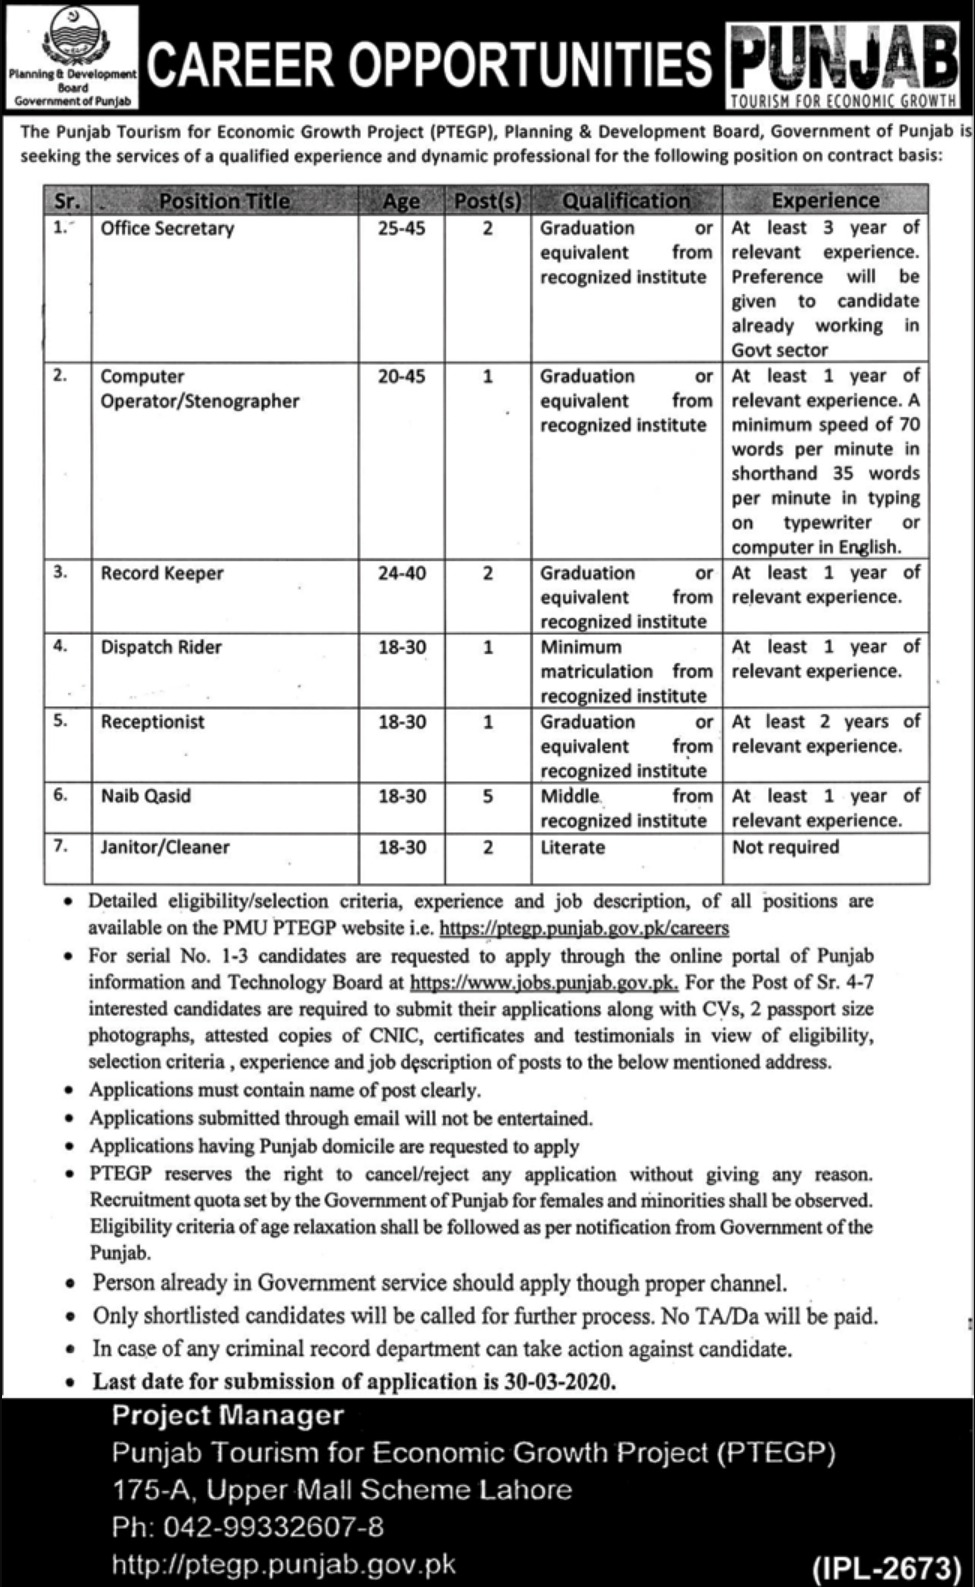 Planning & Development Board Government of Punjab PTEGP Jobs 2020